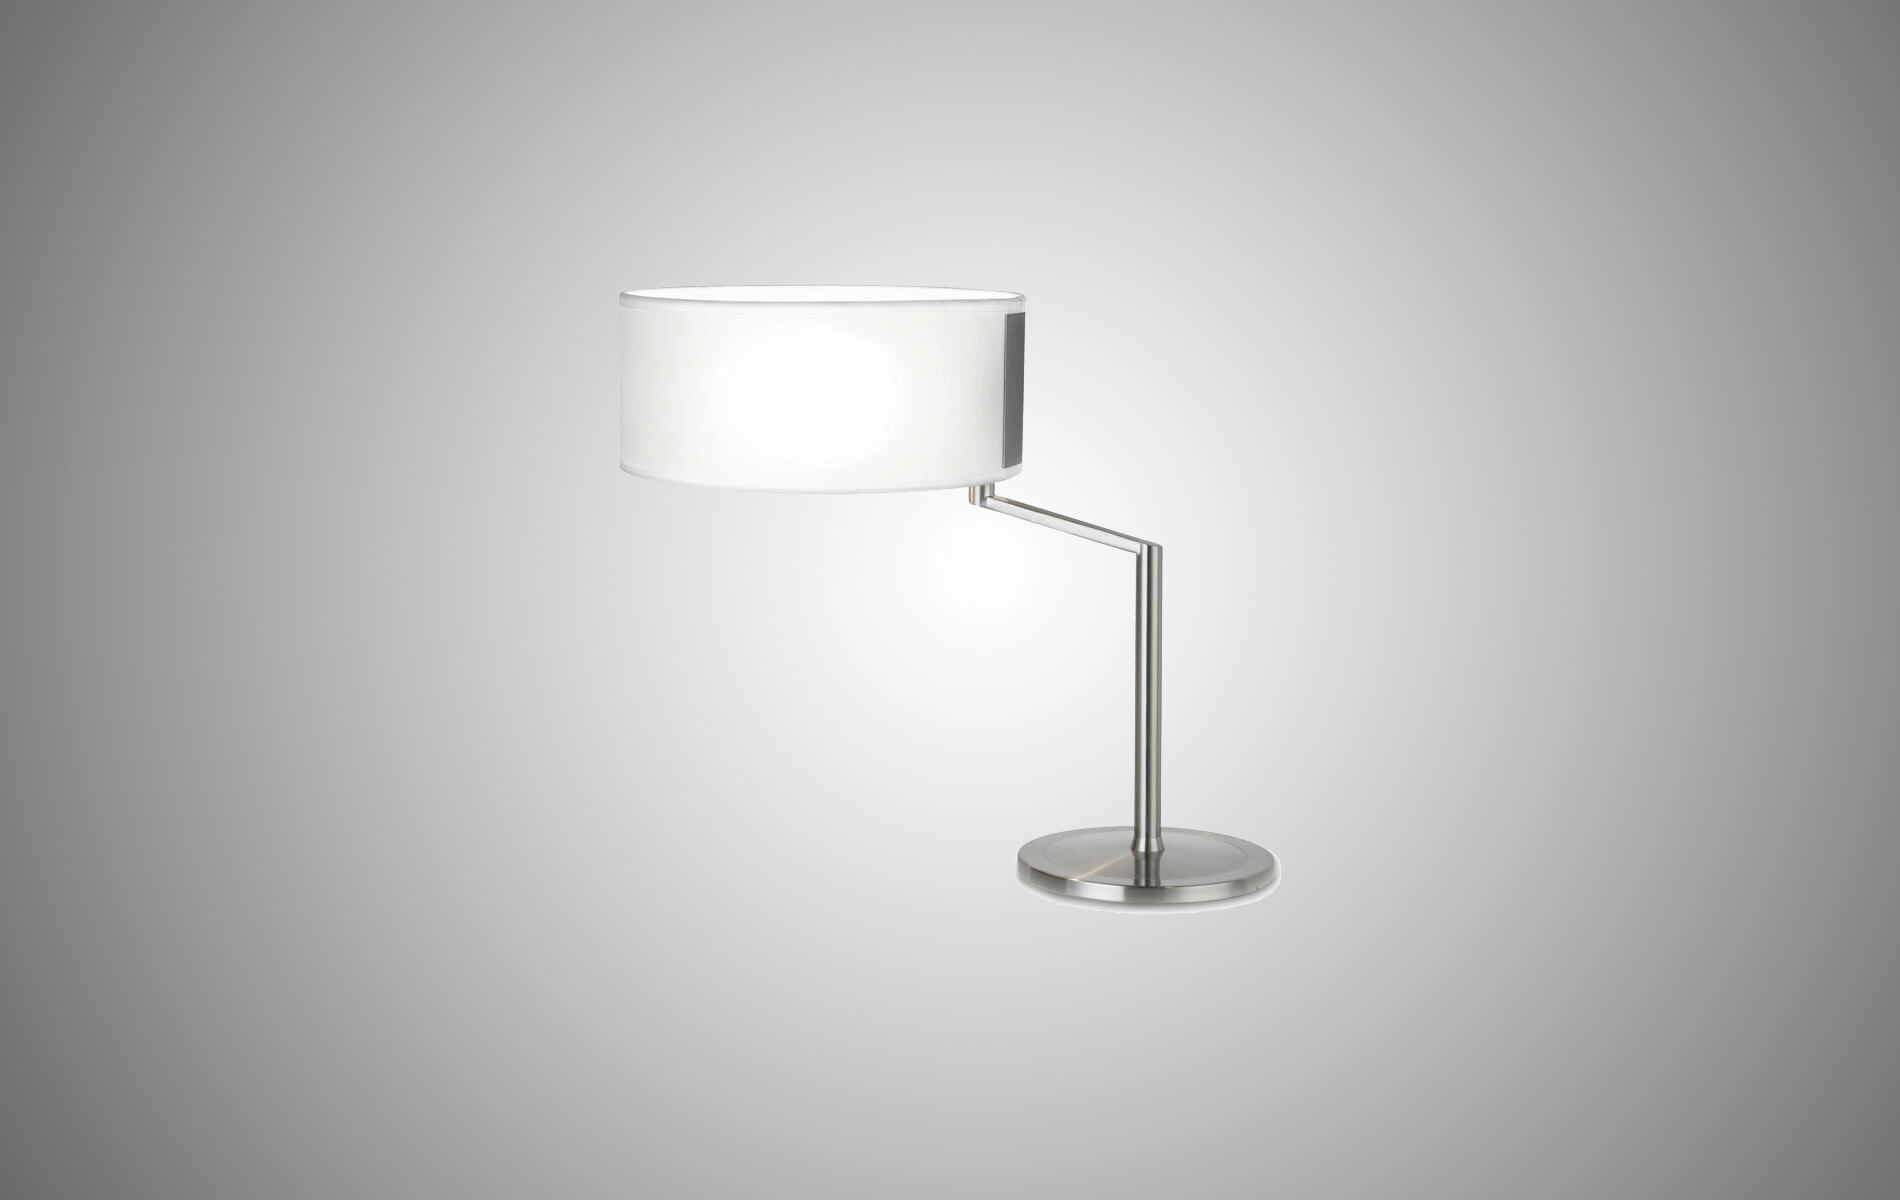 More information of Leds C4 TWIST table lamp